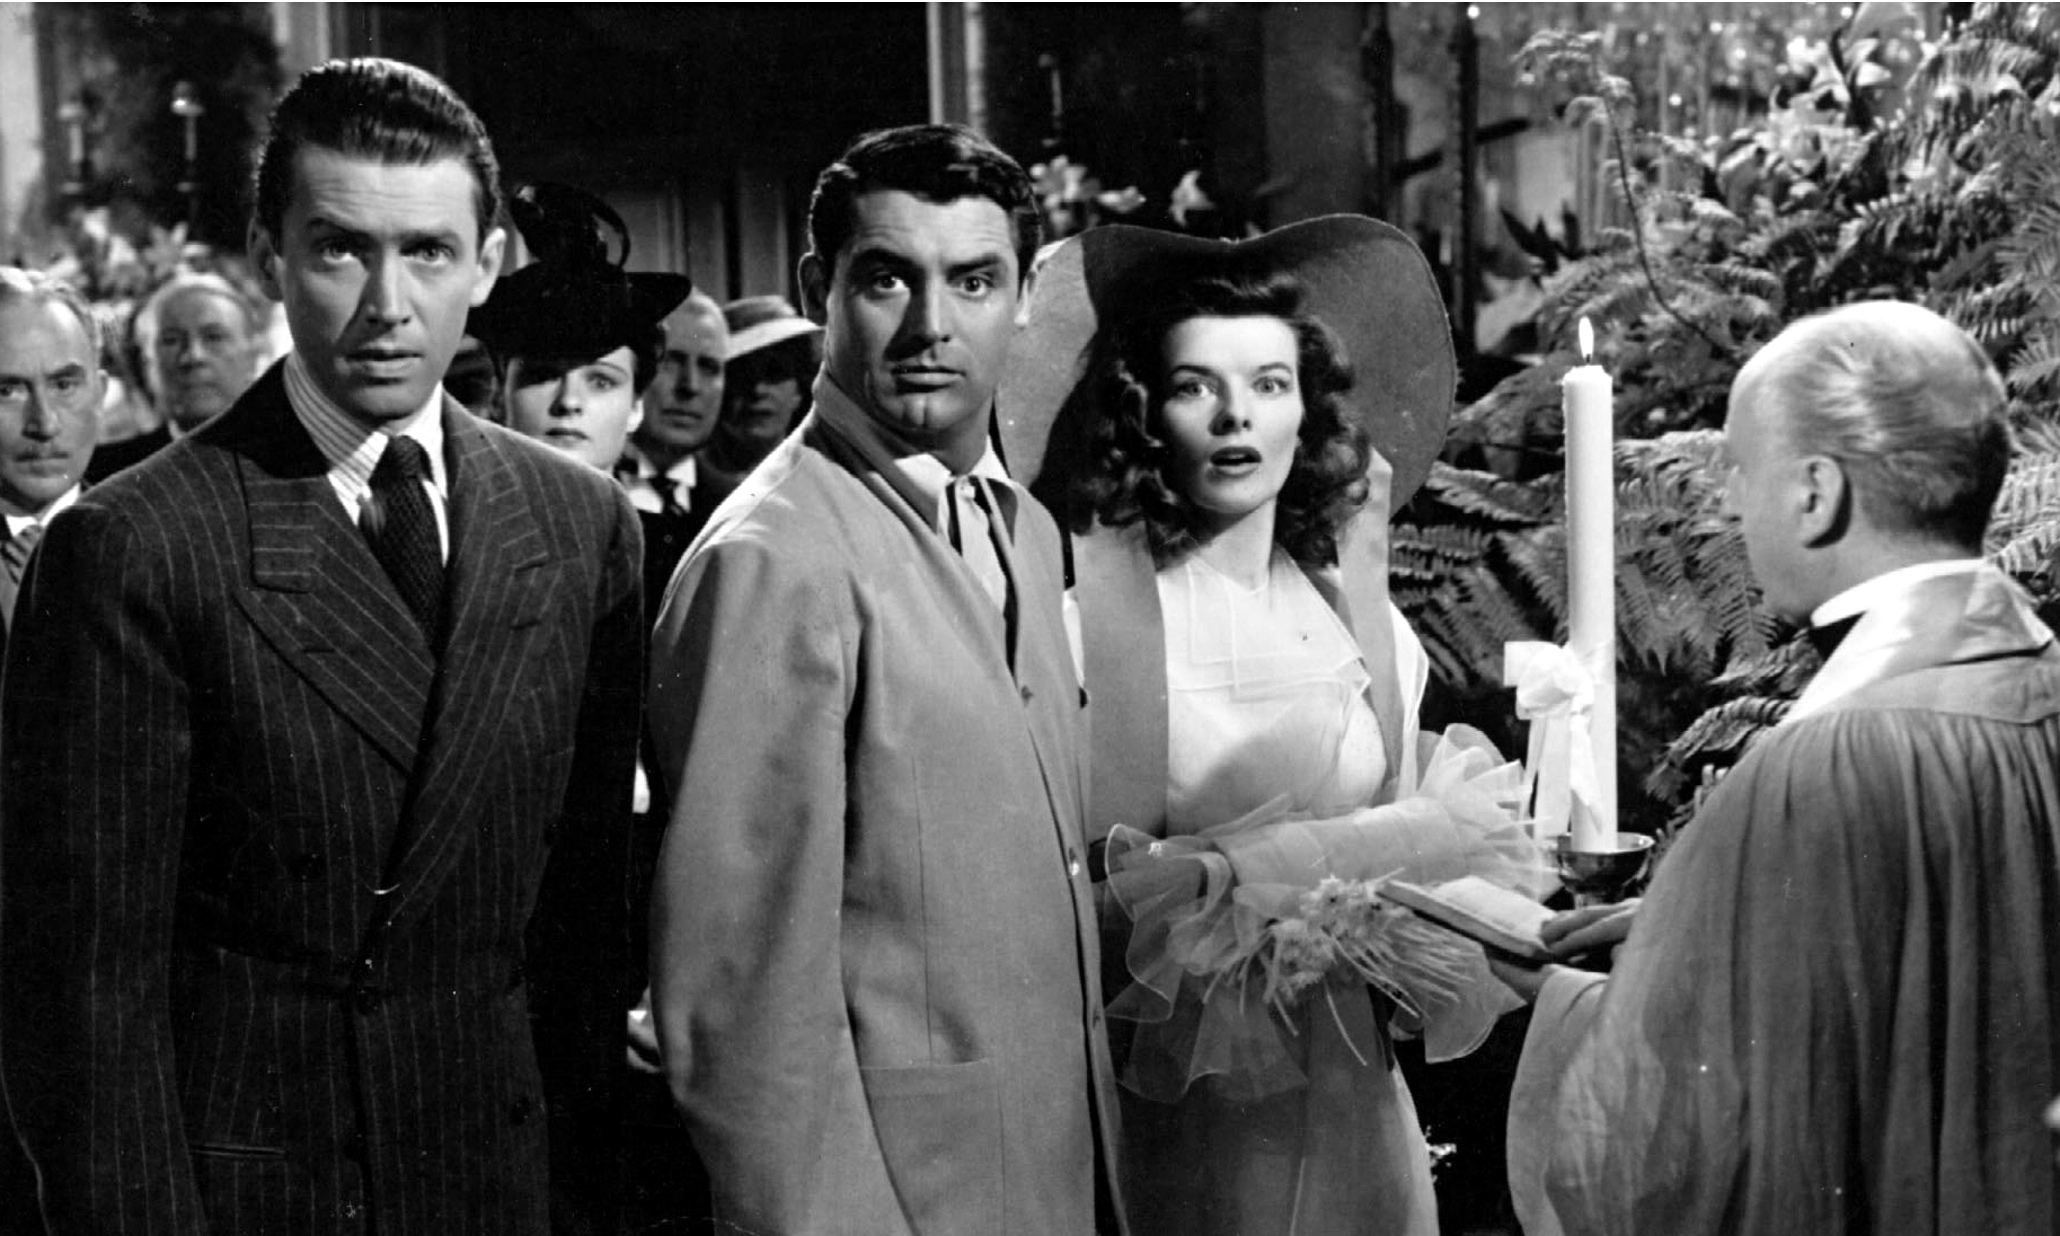 Still Image of James Stewart, Cary Grant and Katharine Hepburn from The Philadelphia Story directed by George Cukor.